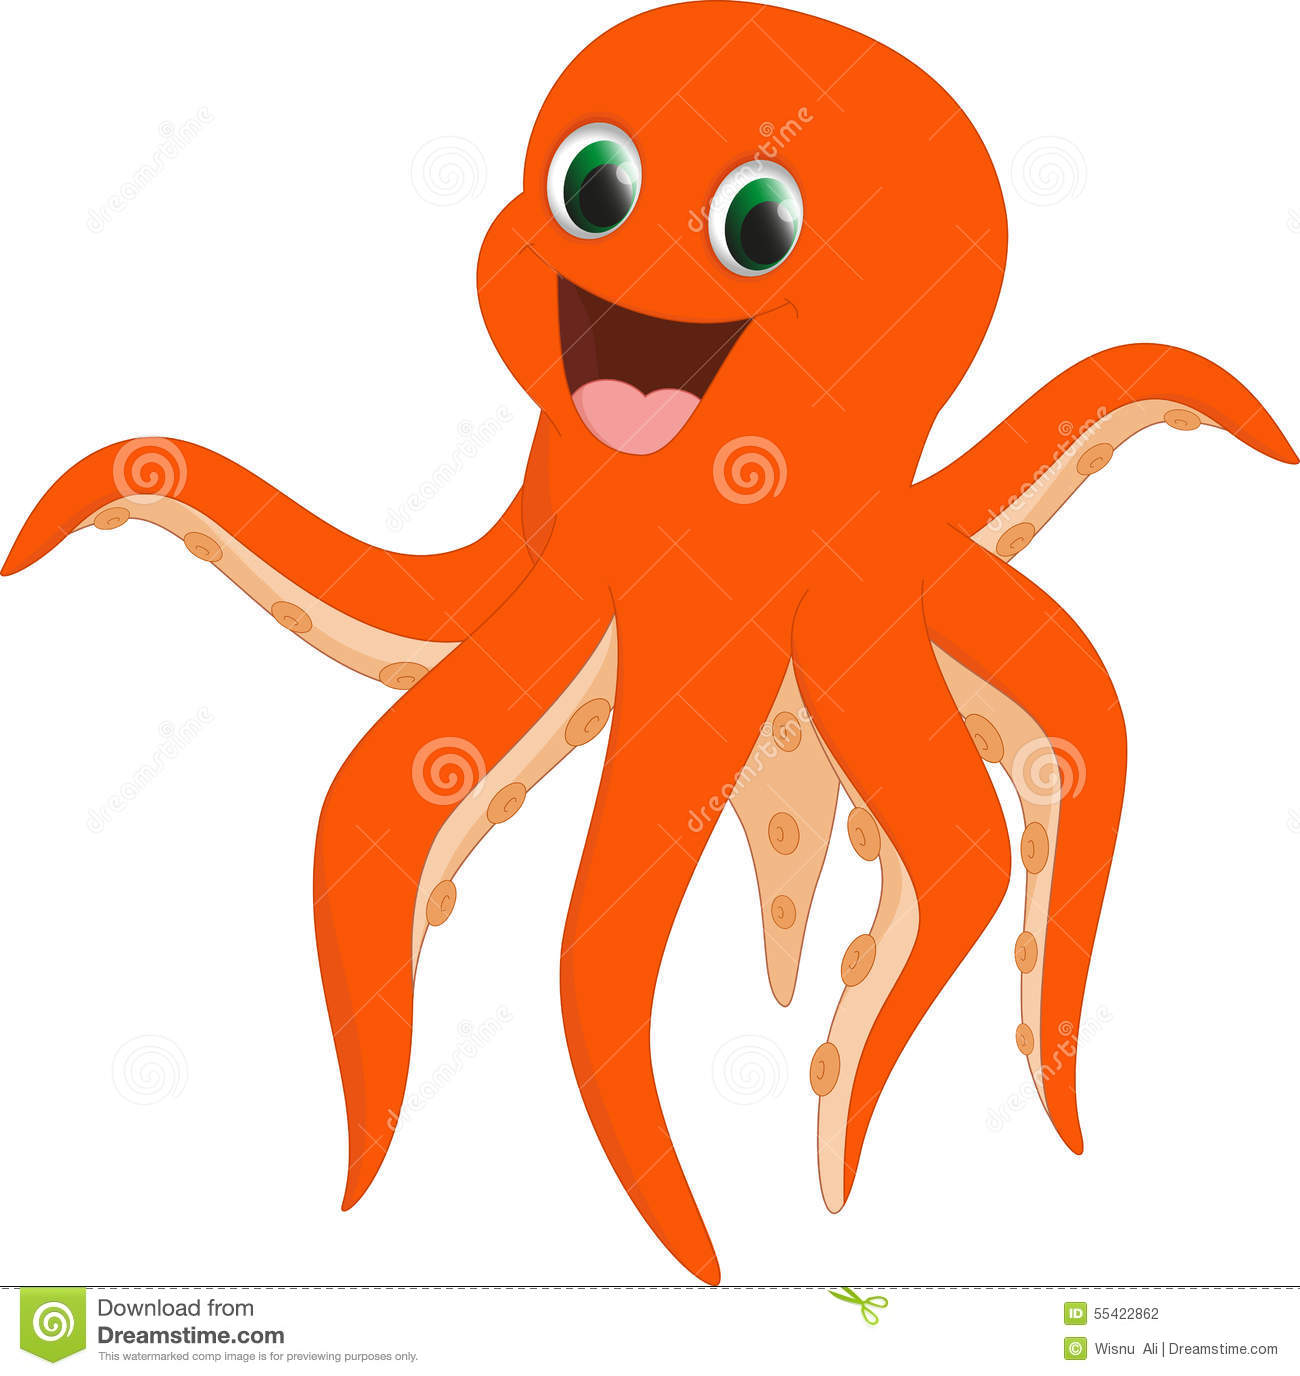 Image result for octopus cartoon images